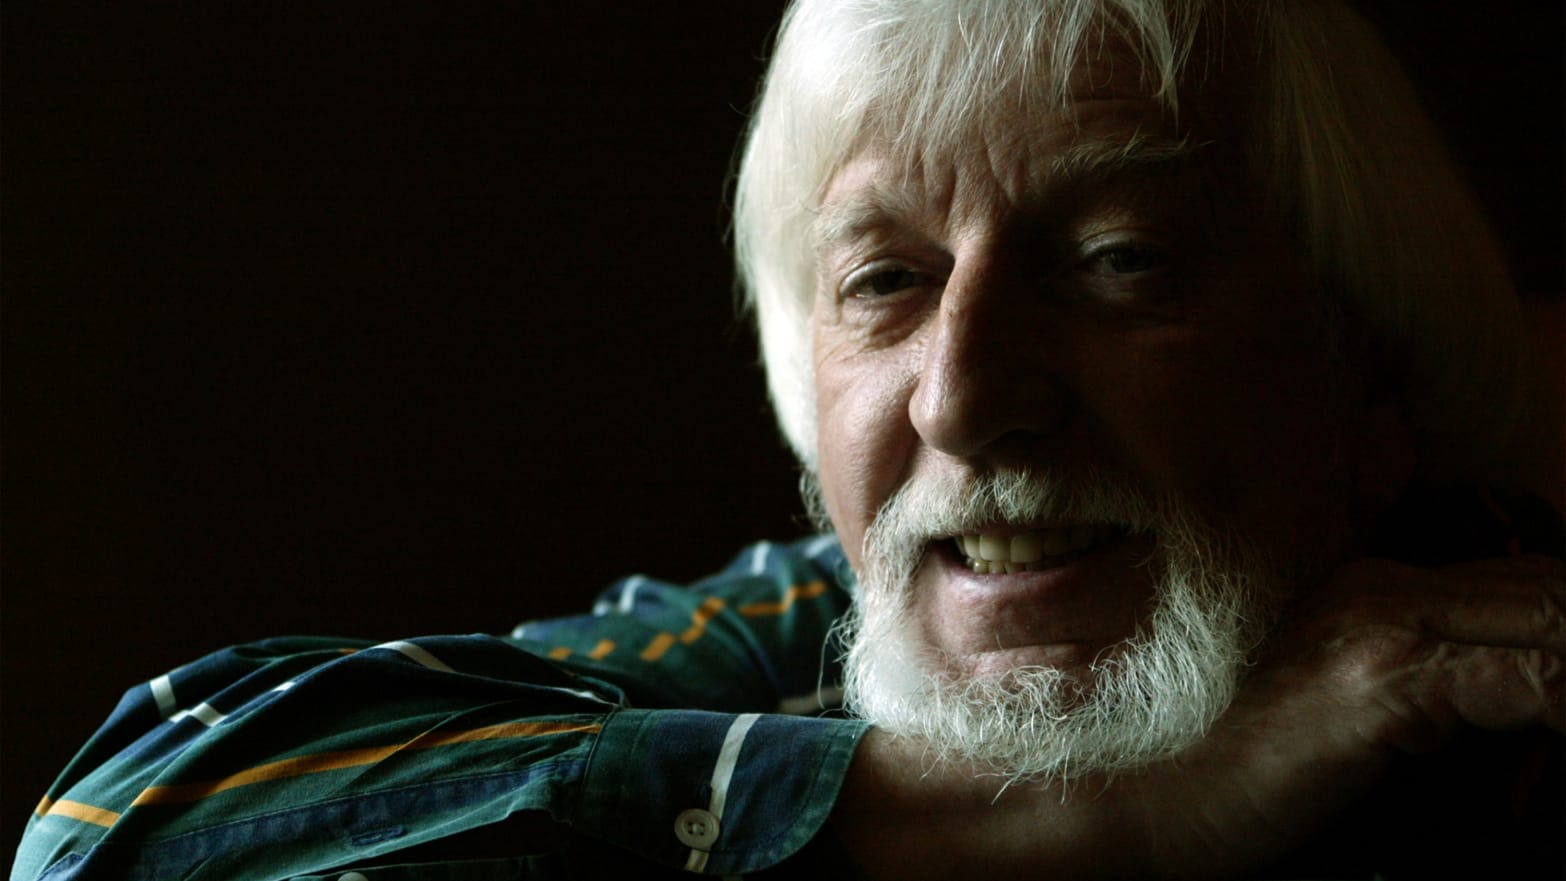 Caroll Spinney Better Known As Big Bird Has Died